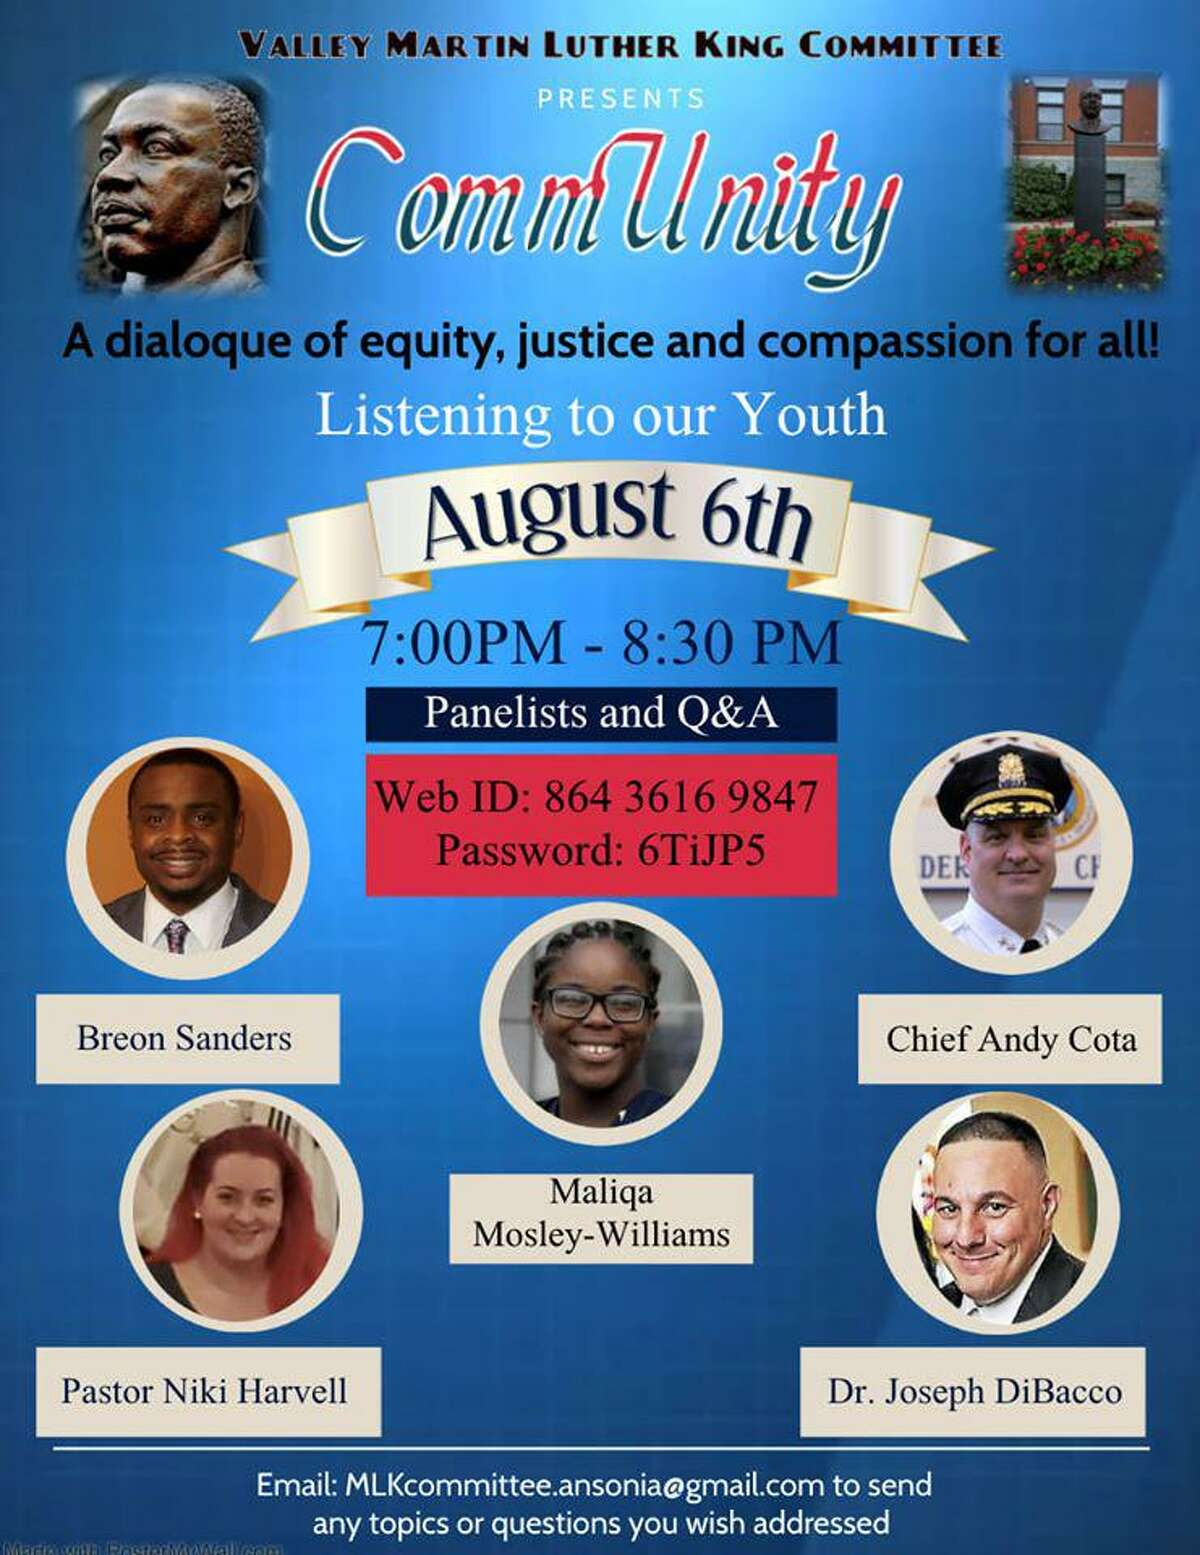 The Valley MLK Committee held an online dialogue Aug. 6.